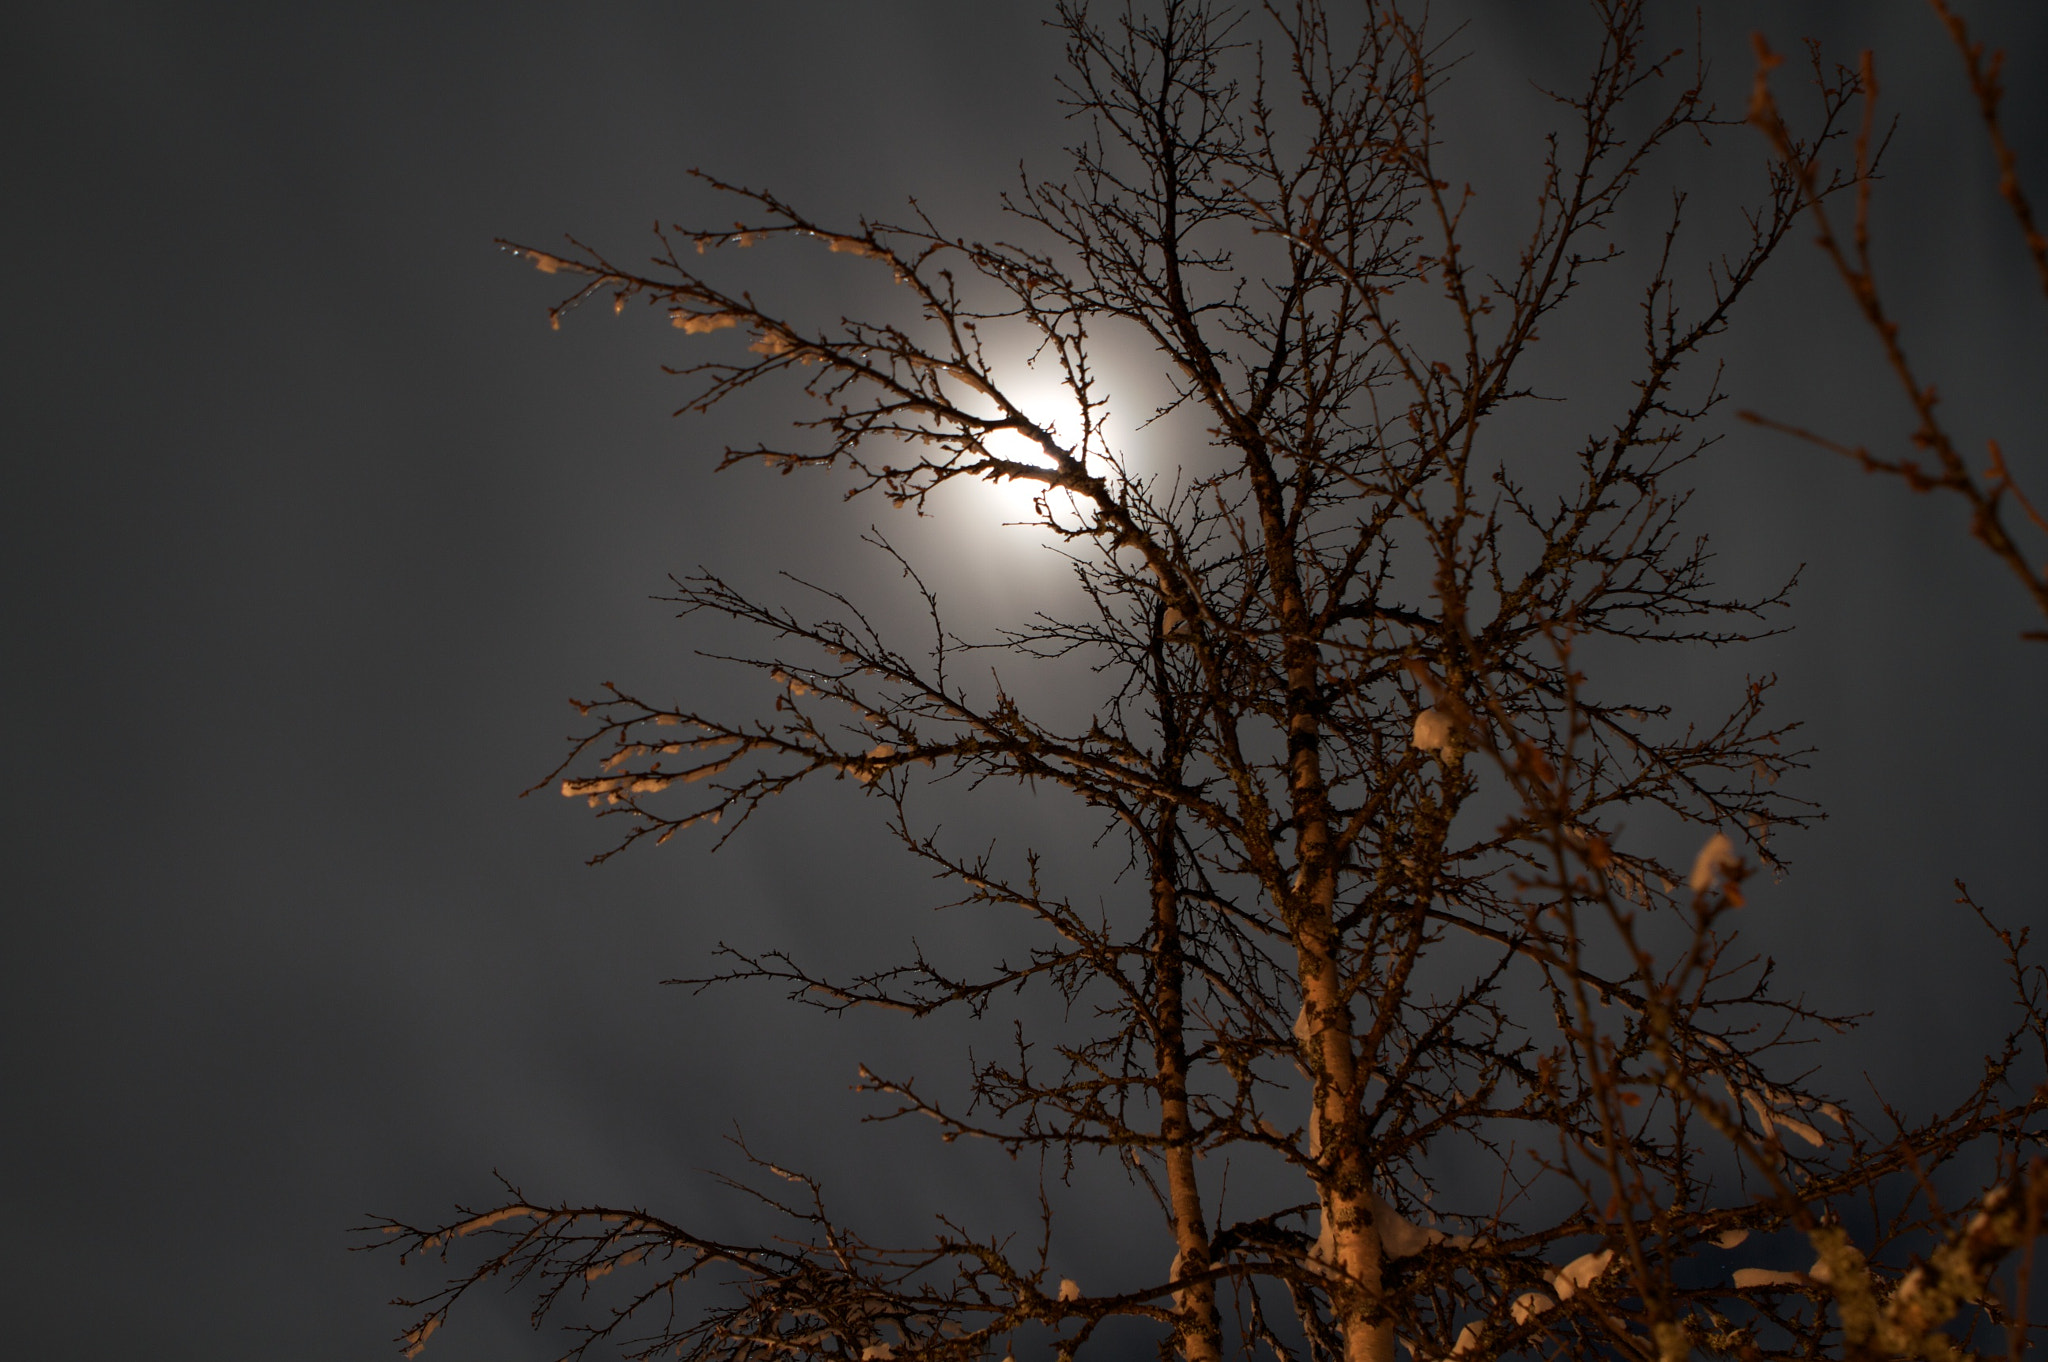 Photograph Cloudy moon by Christian Bedsvaag on 500px